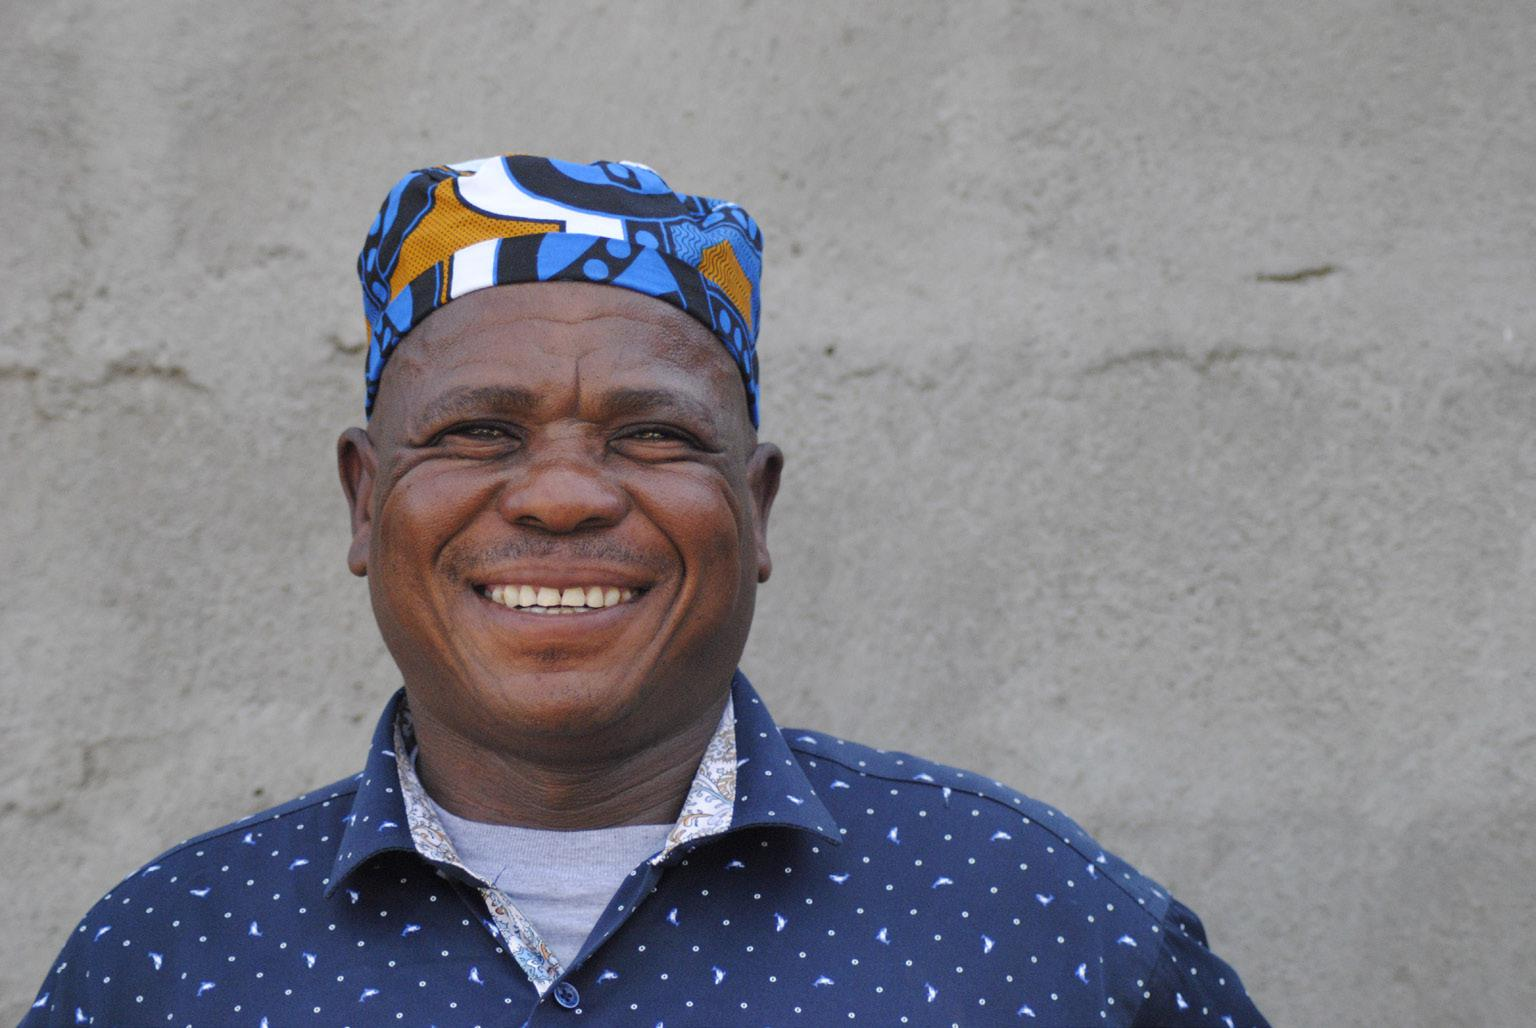 FIGURE 7. Sibongile Kgaila before one of his shows (Kweneng, 30th June 2019_photo S. Montaquila)